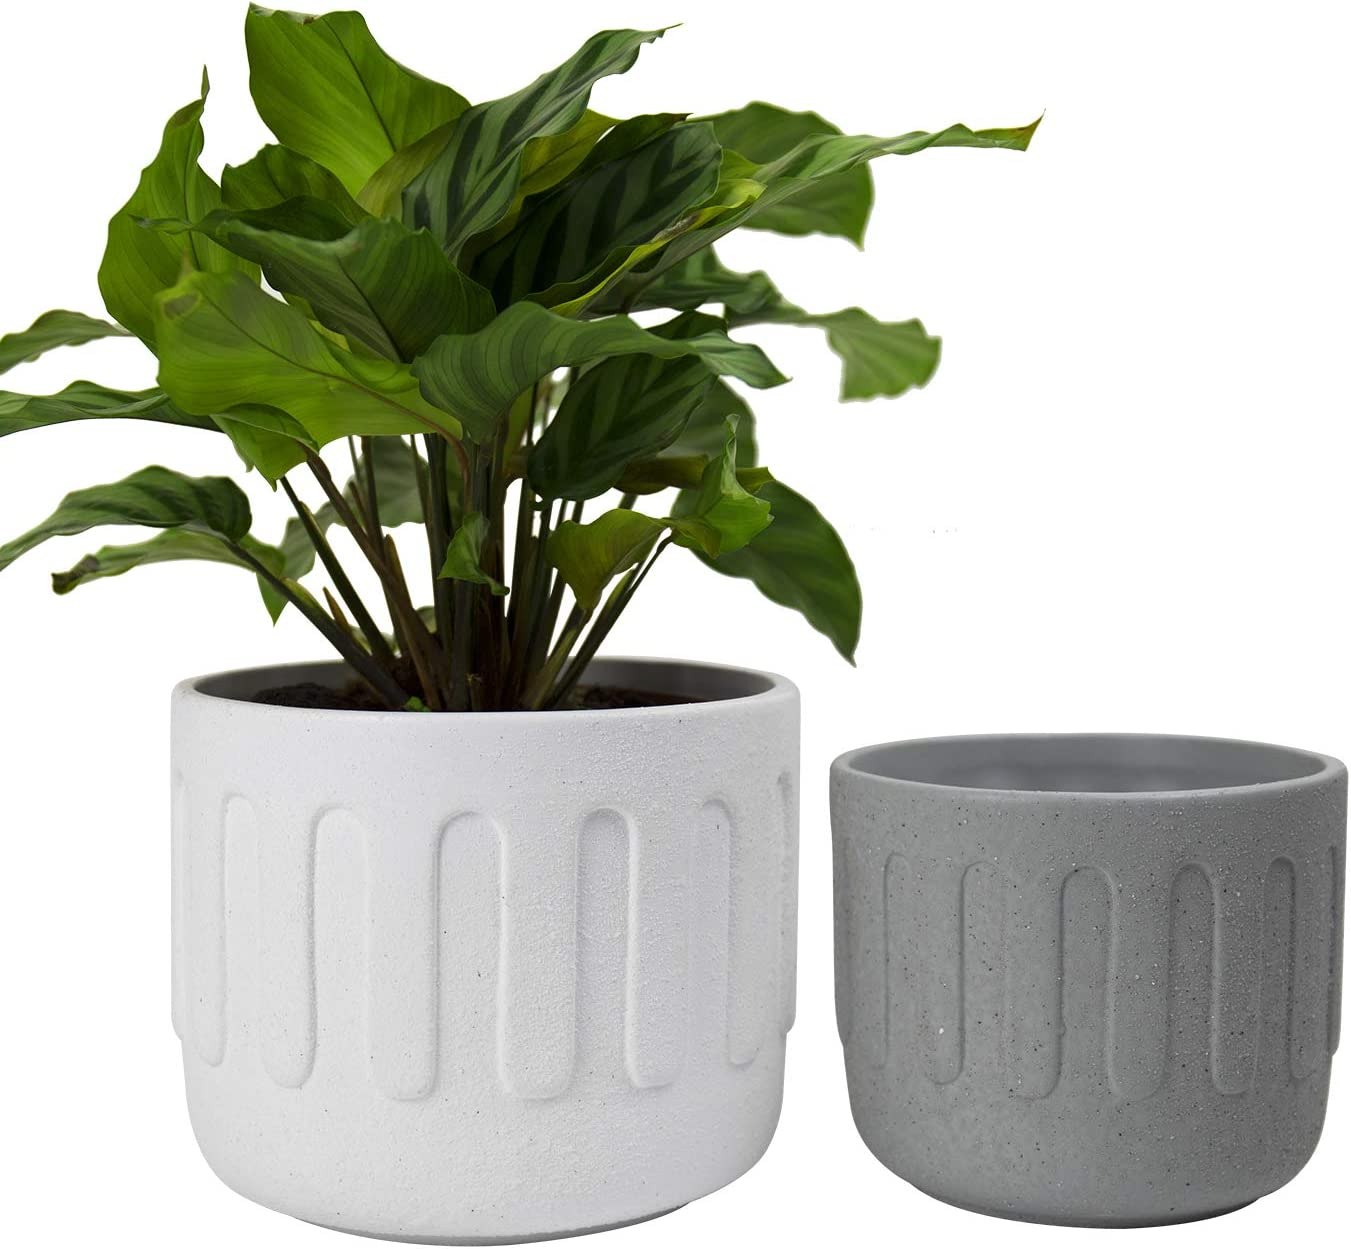 LA JOLIE MUSE Ceramic Plant Flower Pots Indoor - 6.3 Inch Set of 2 White and Grey Modern Round Planters with Drainage Hole